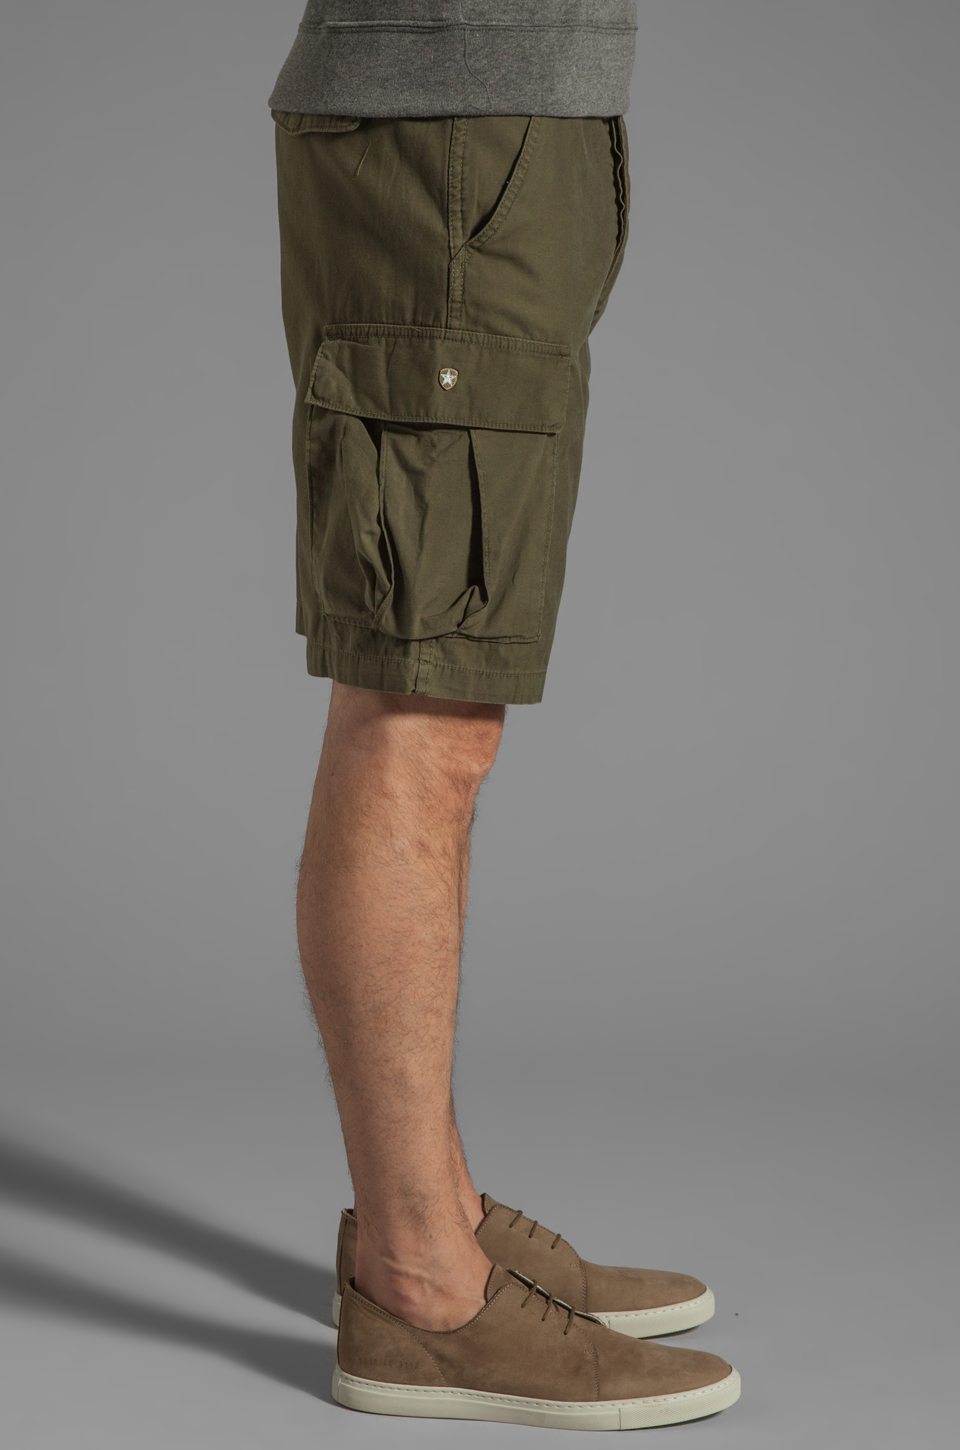 Obey Recon Cargo Short in Army